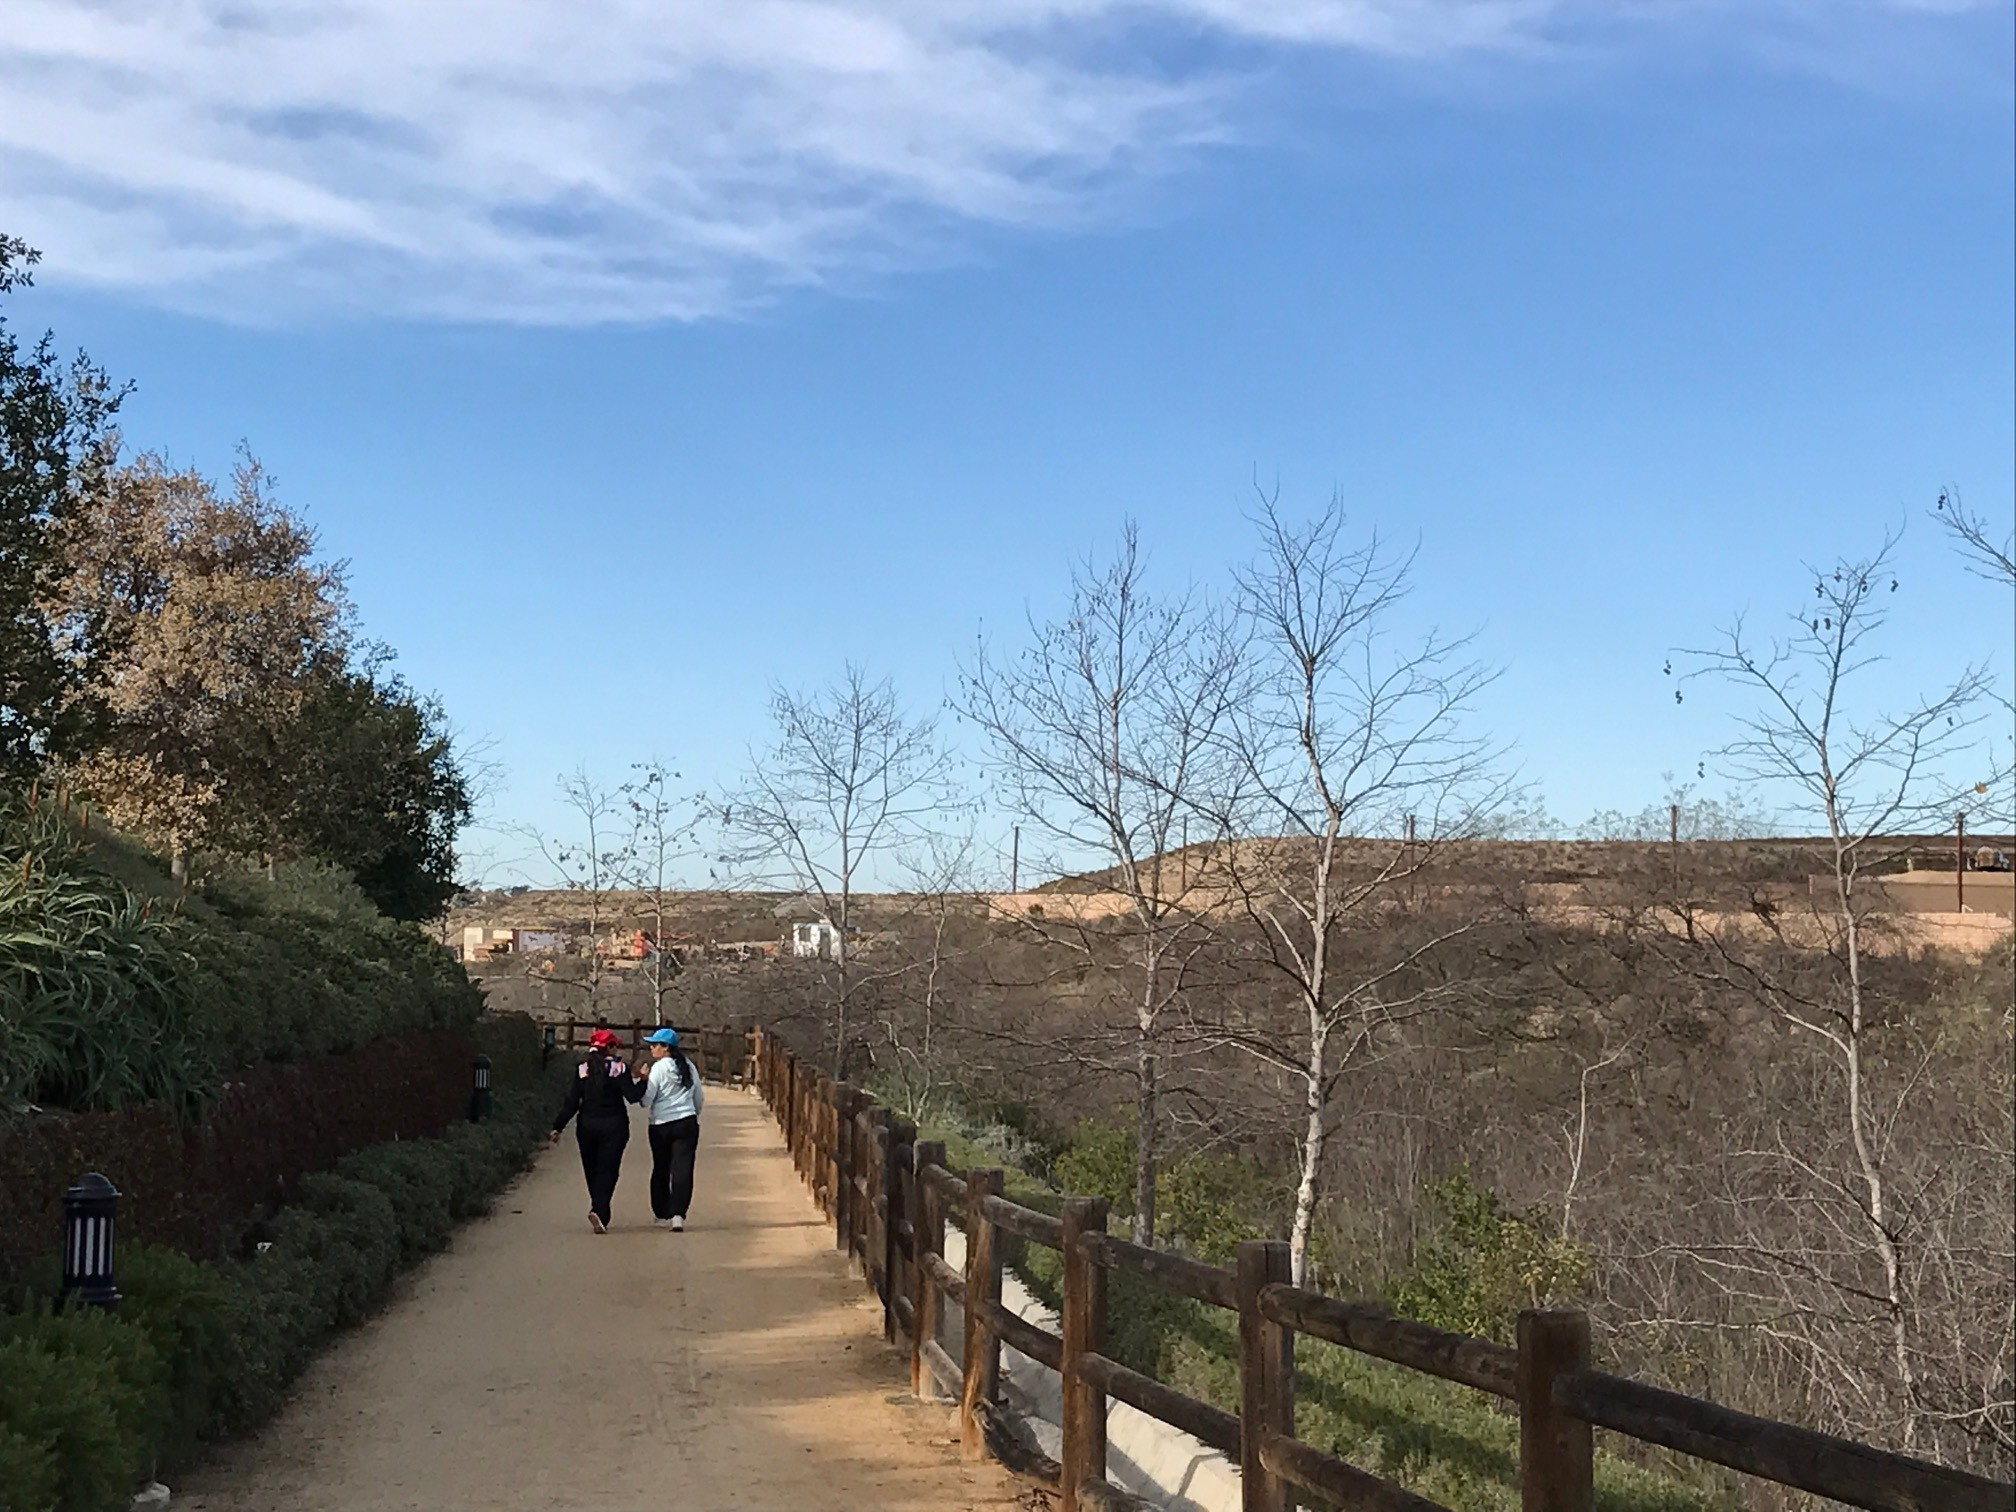 Walkers enjoy the Urban Amenity Trail in Pacific Highlands Ranch.